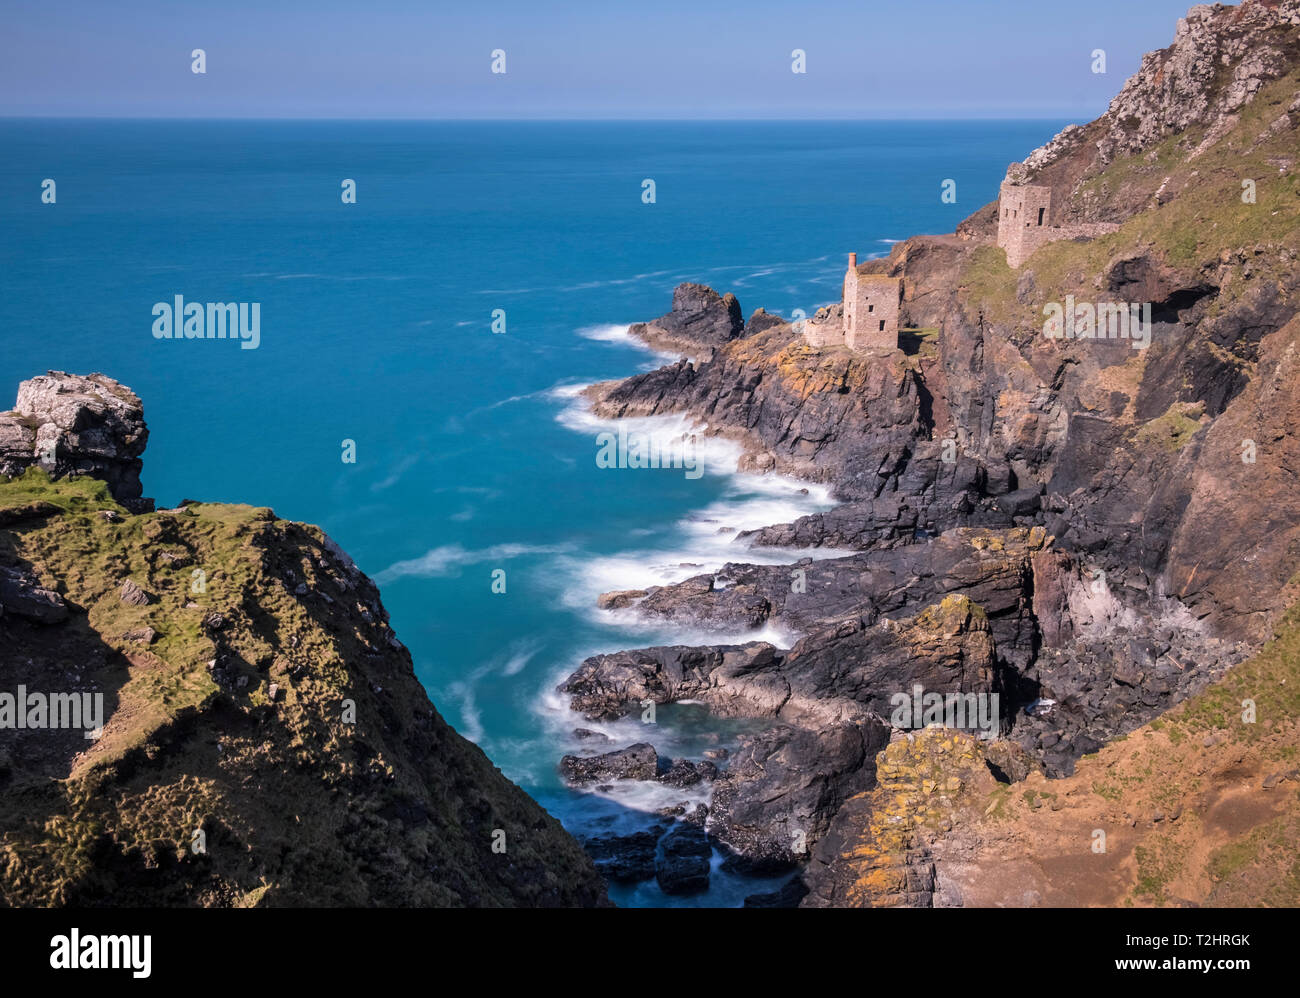 Disused tin mine buildings on dramatic cliff edges of north Atlantic coast, Botallack, Cornwall, England, UK Stock Photo